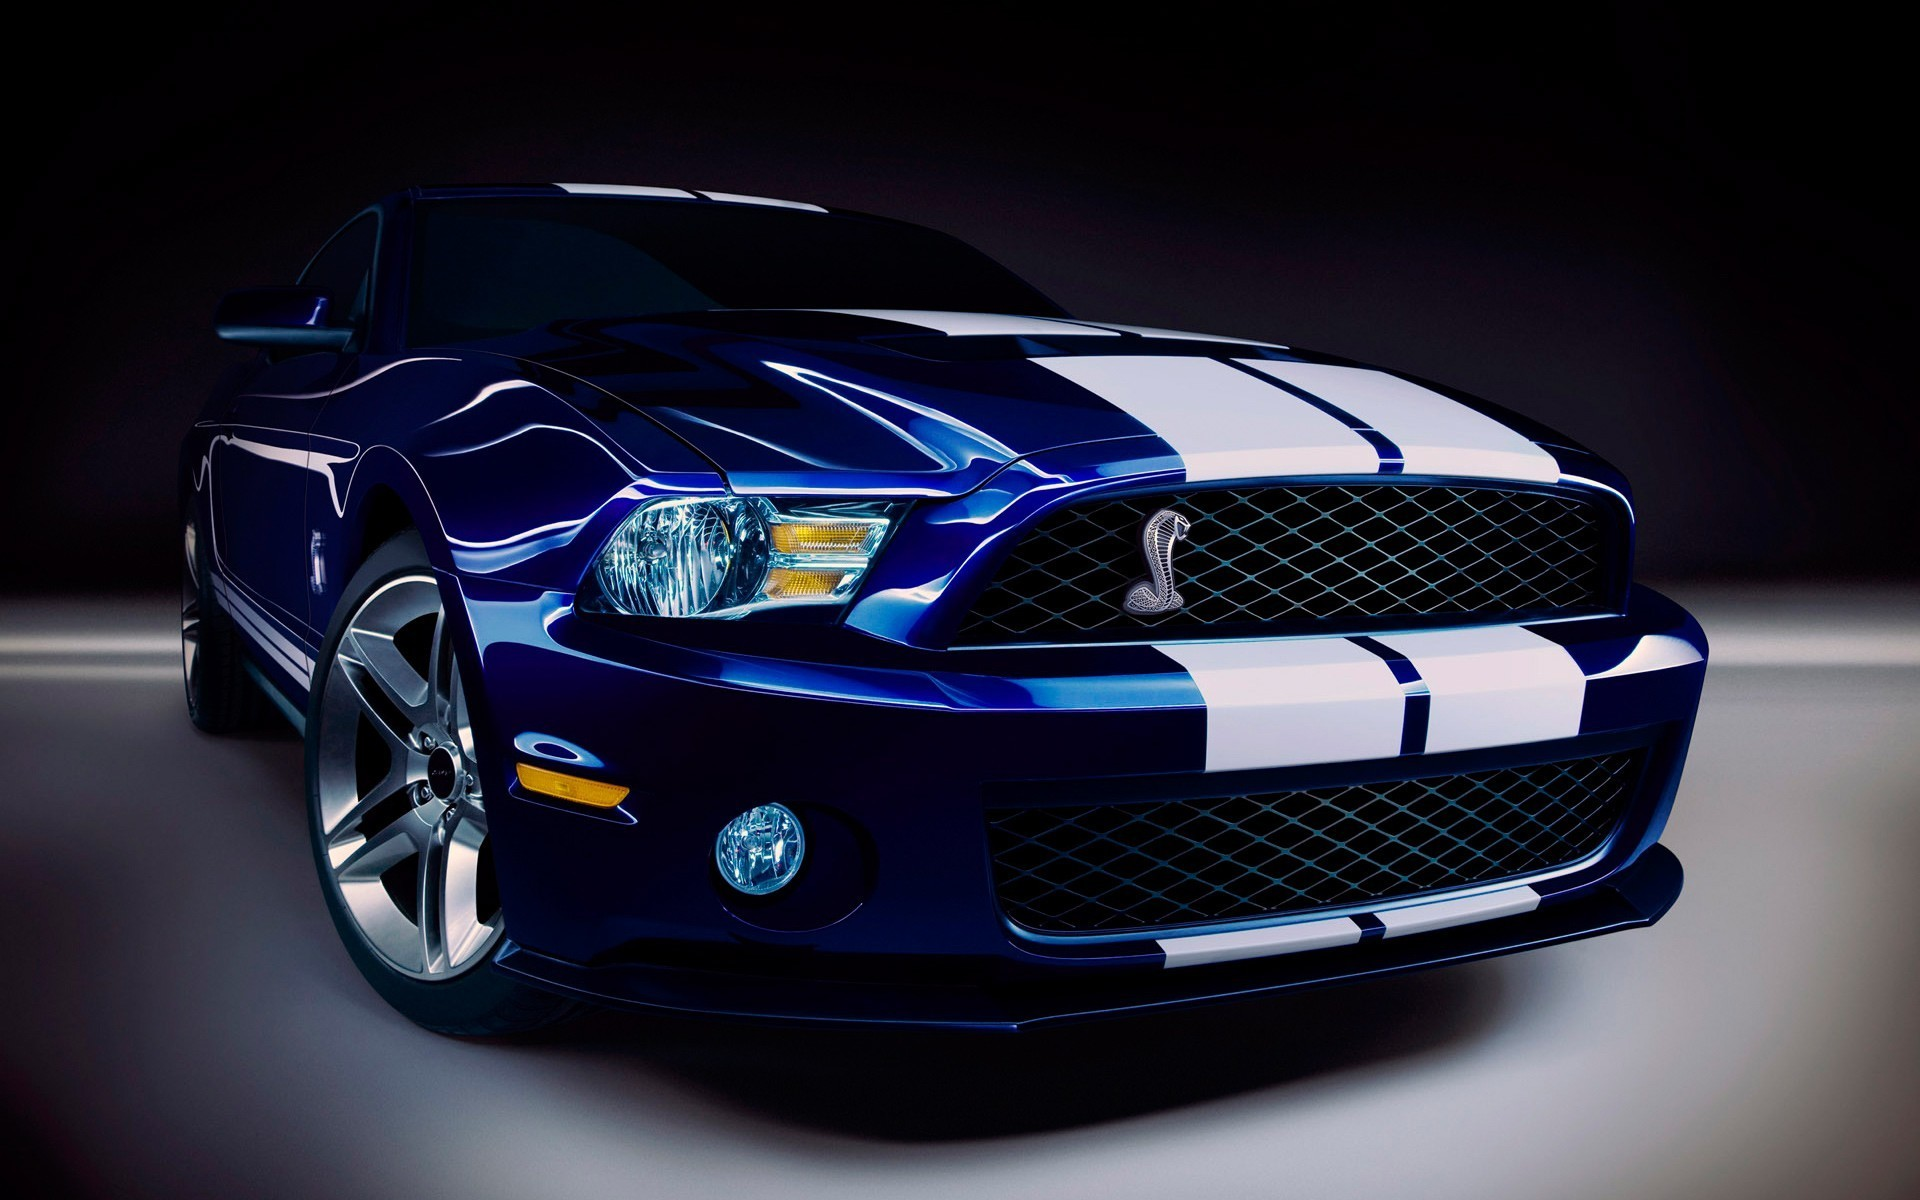 Res: 1920x1200, Mustang Shelby GT500 wallpaper